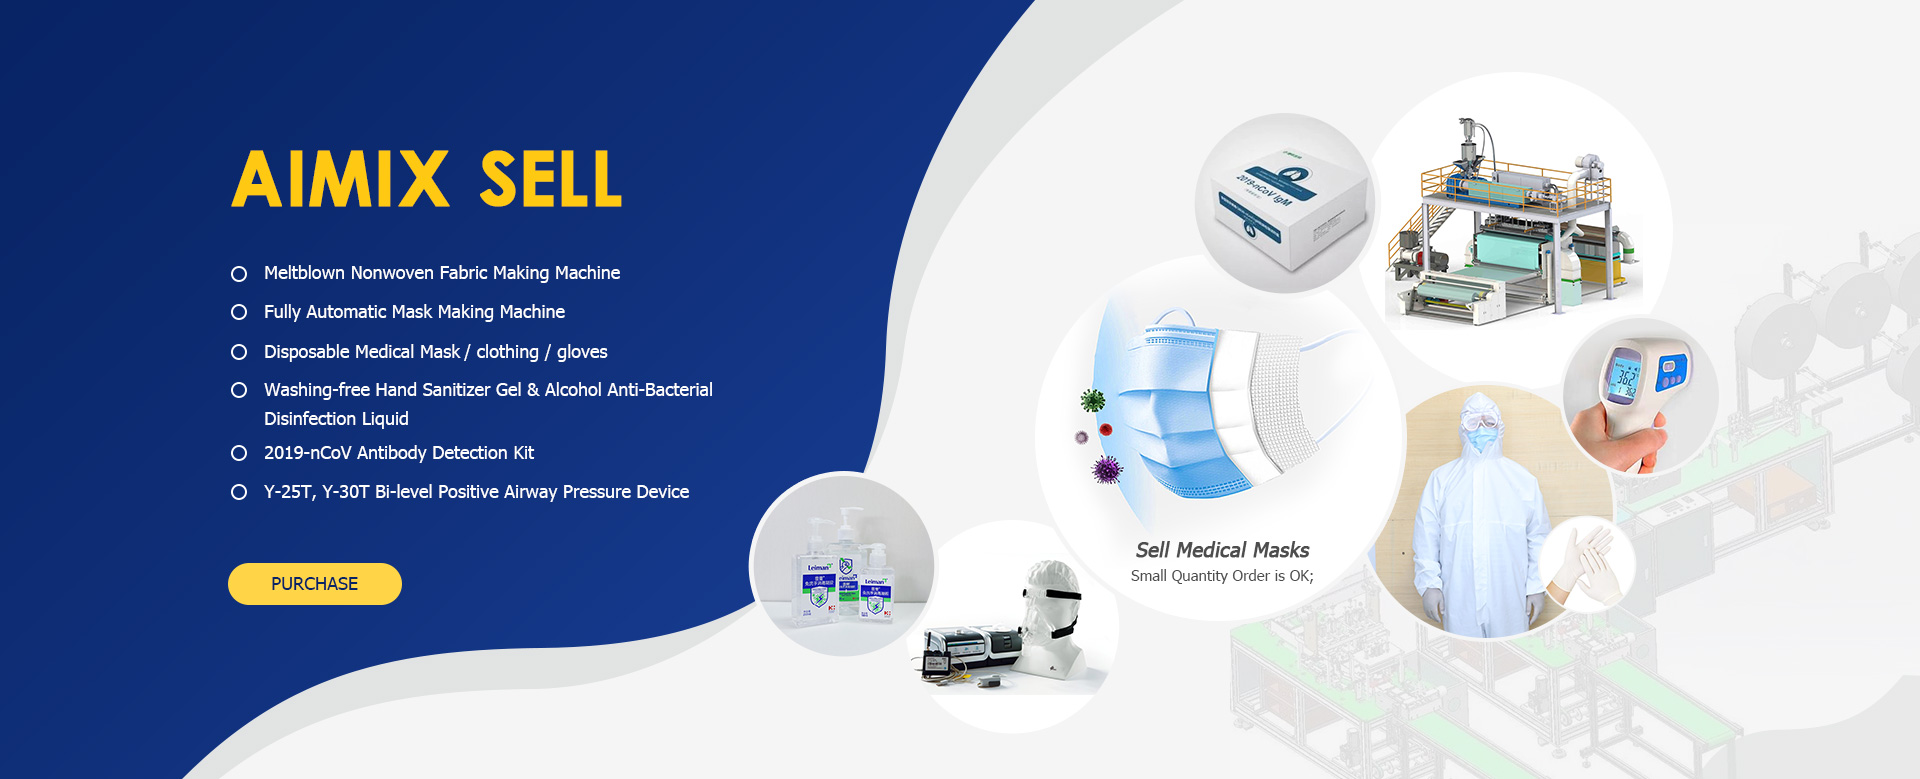 AIMIX special products